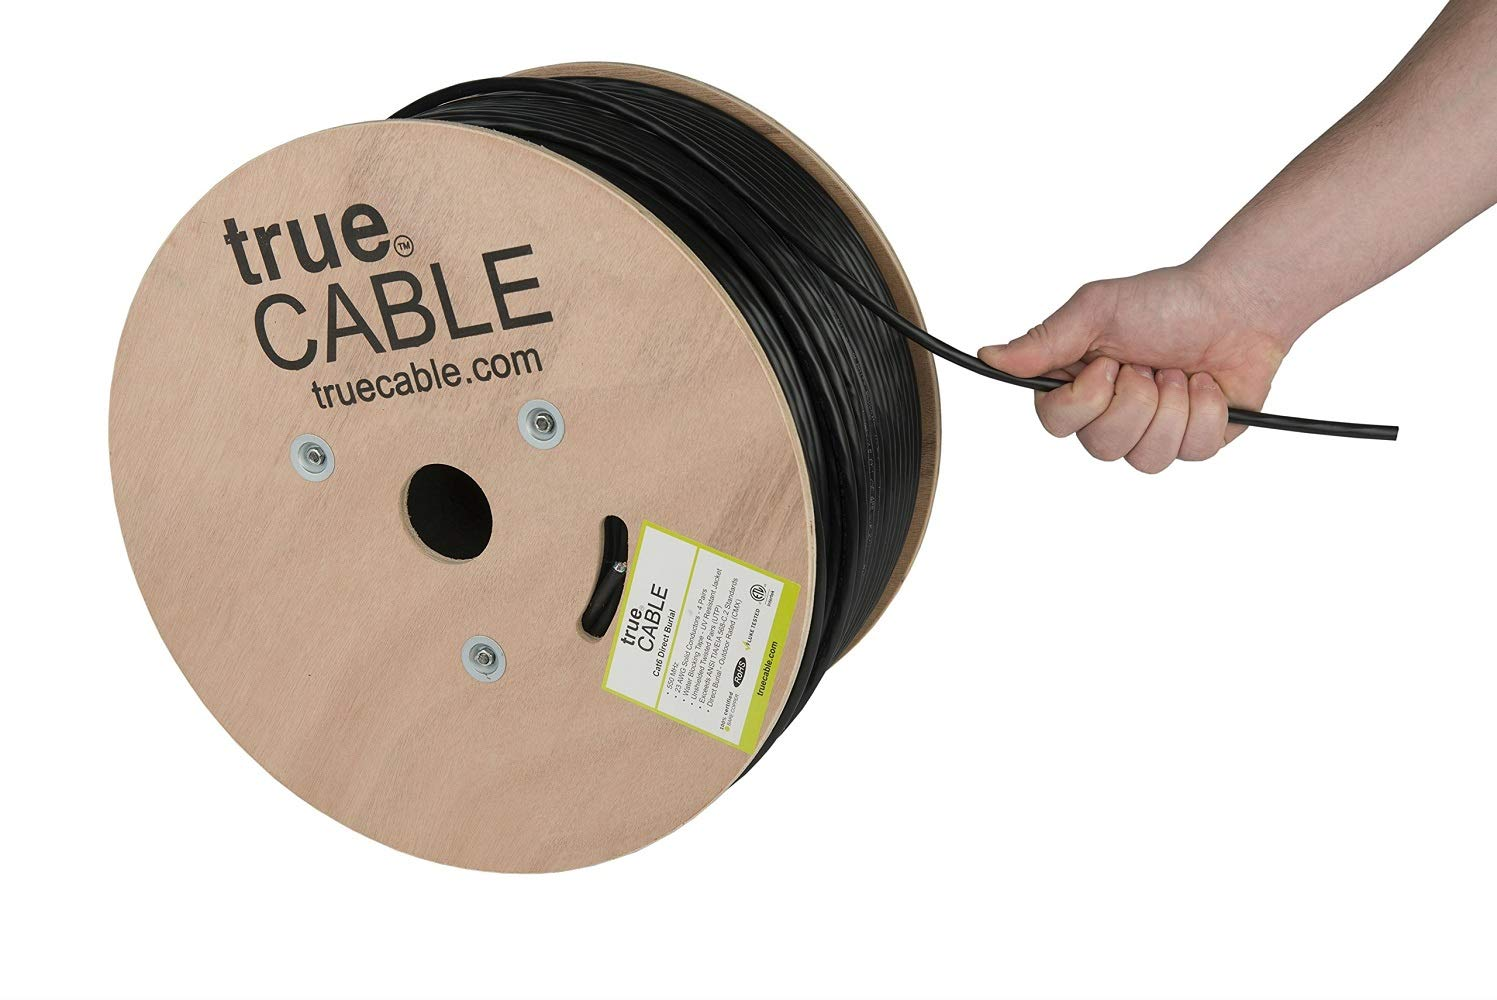 Cat6 Outdoor, 500ft, Waterproof, Direct Burial Rated CMX, 23AWG Solid Bare Copper, 550MHz, ETL Listed, Unshielded UTP, Bulk Ethernet Cable, trueCABLE